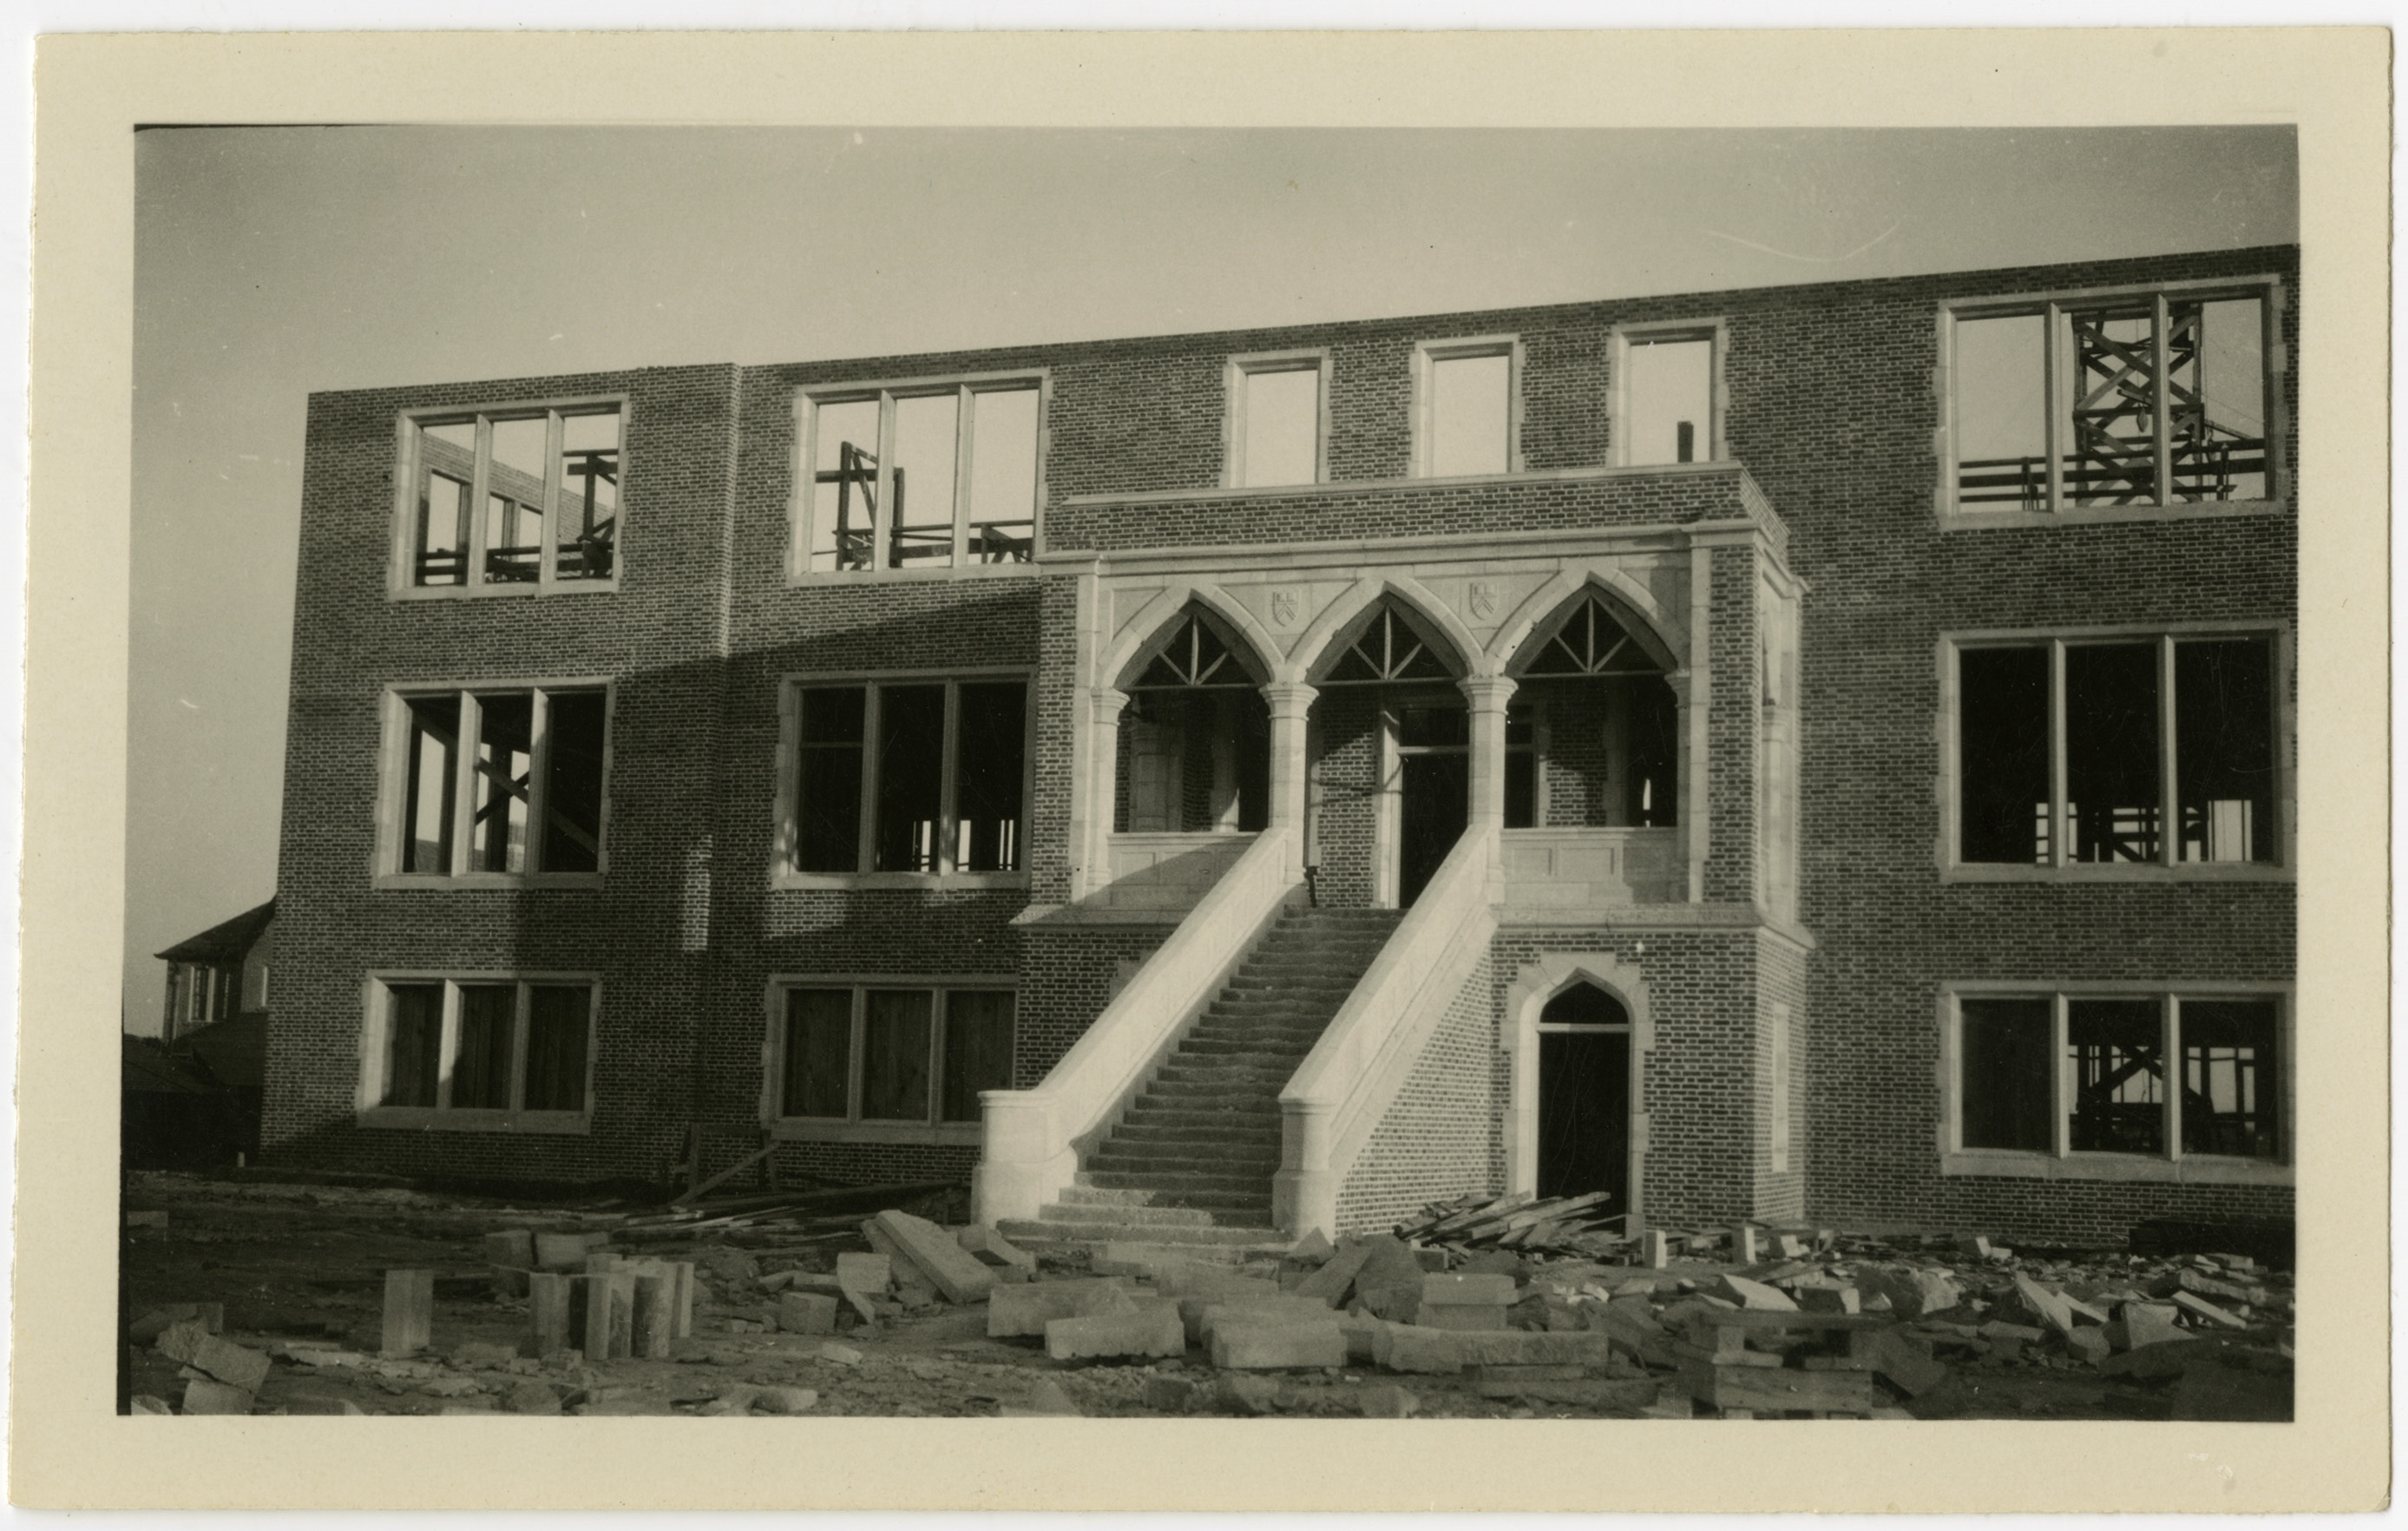 Construction of Weir Administration Building